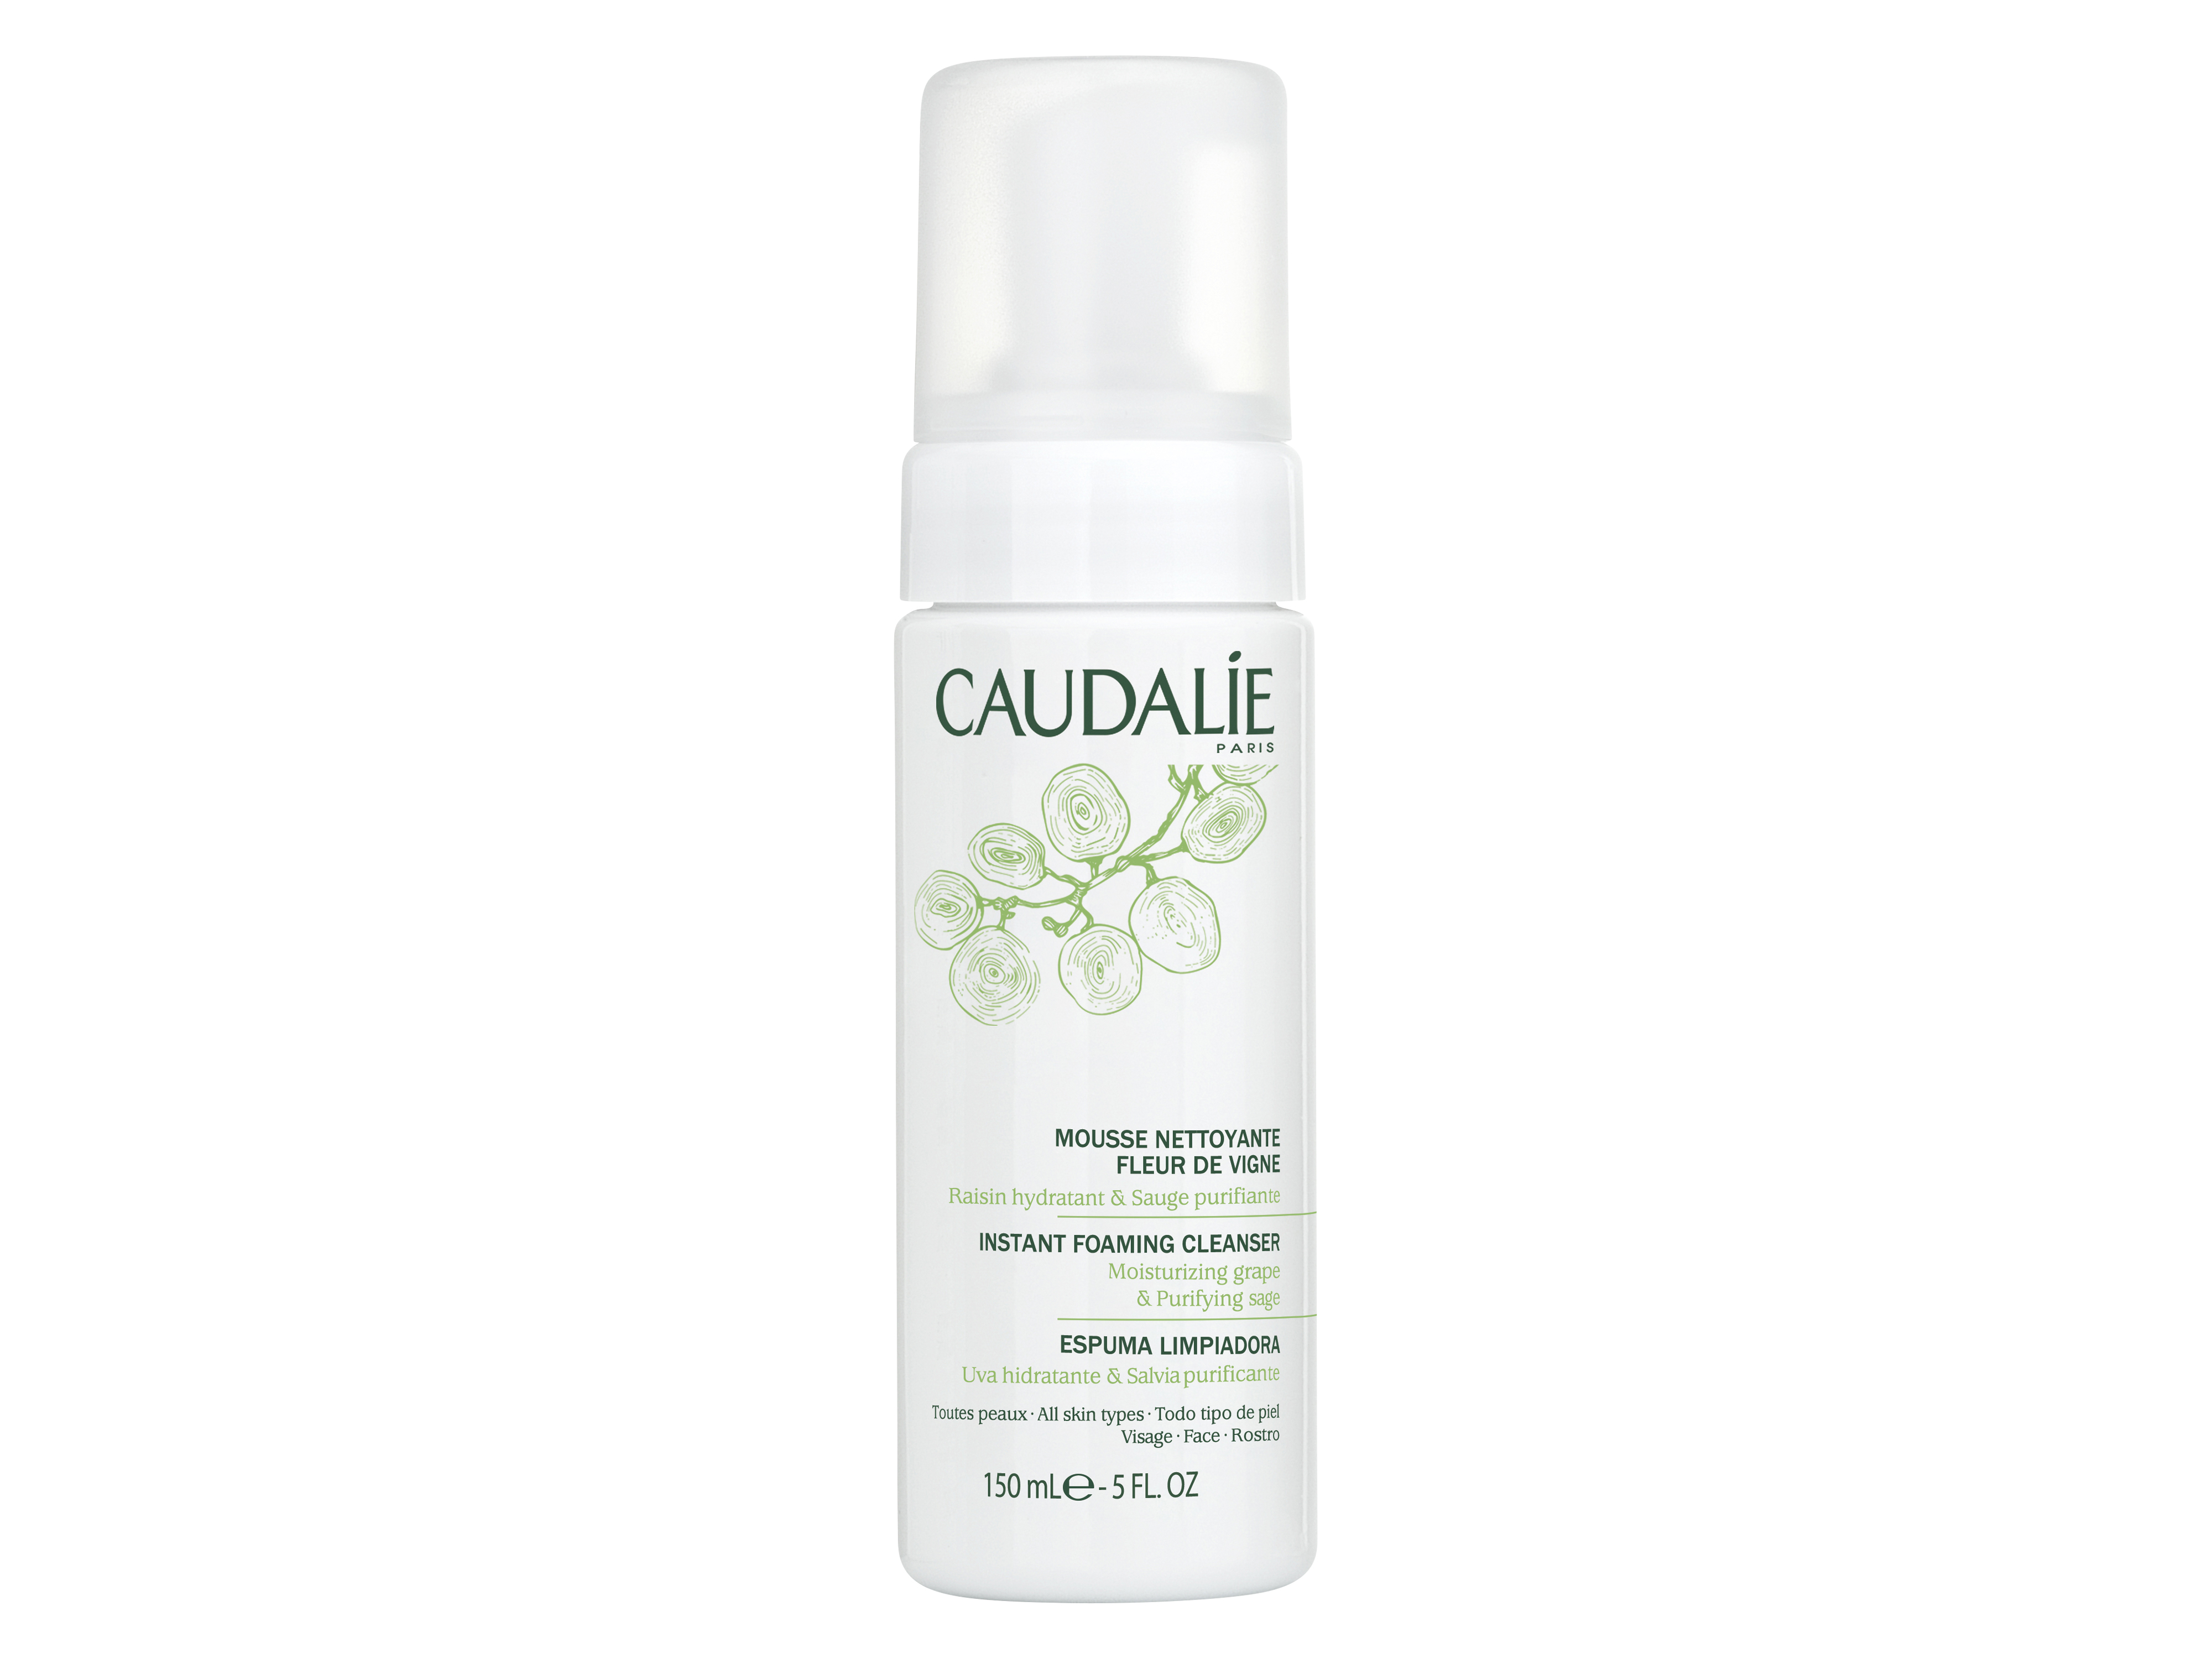 Caudalie Instant Foaming Cleanser, 150 ml